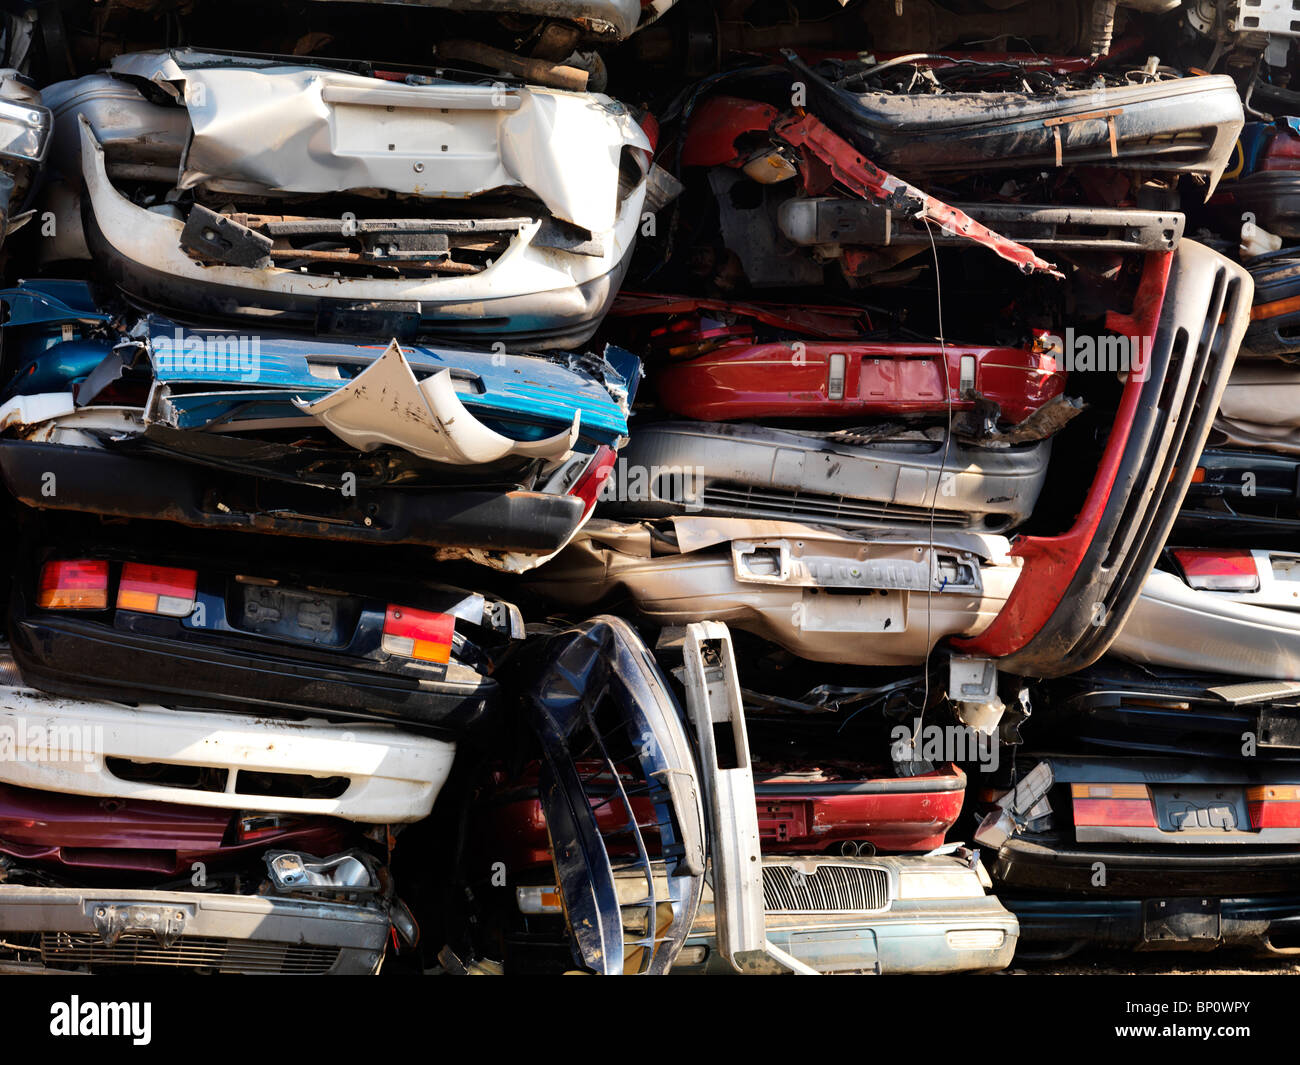 Piled up crushed cars on a scrap yard - Stock Image